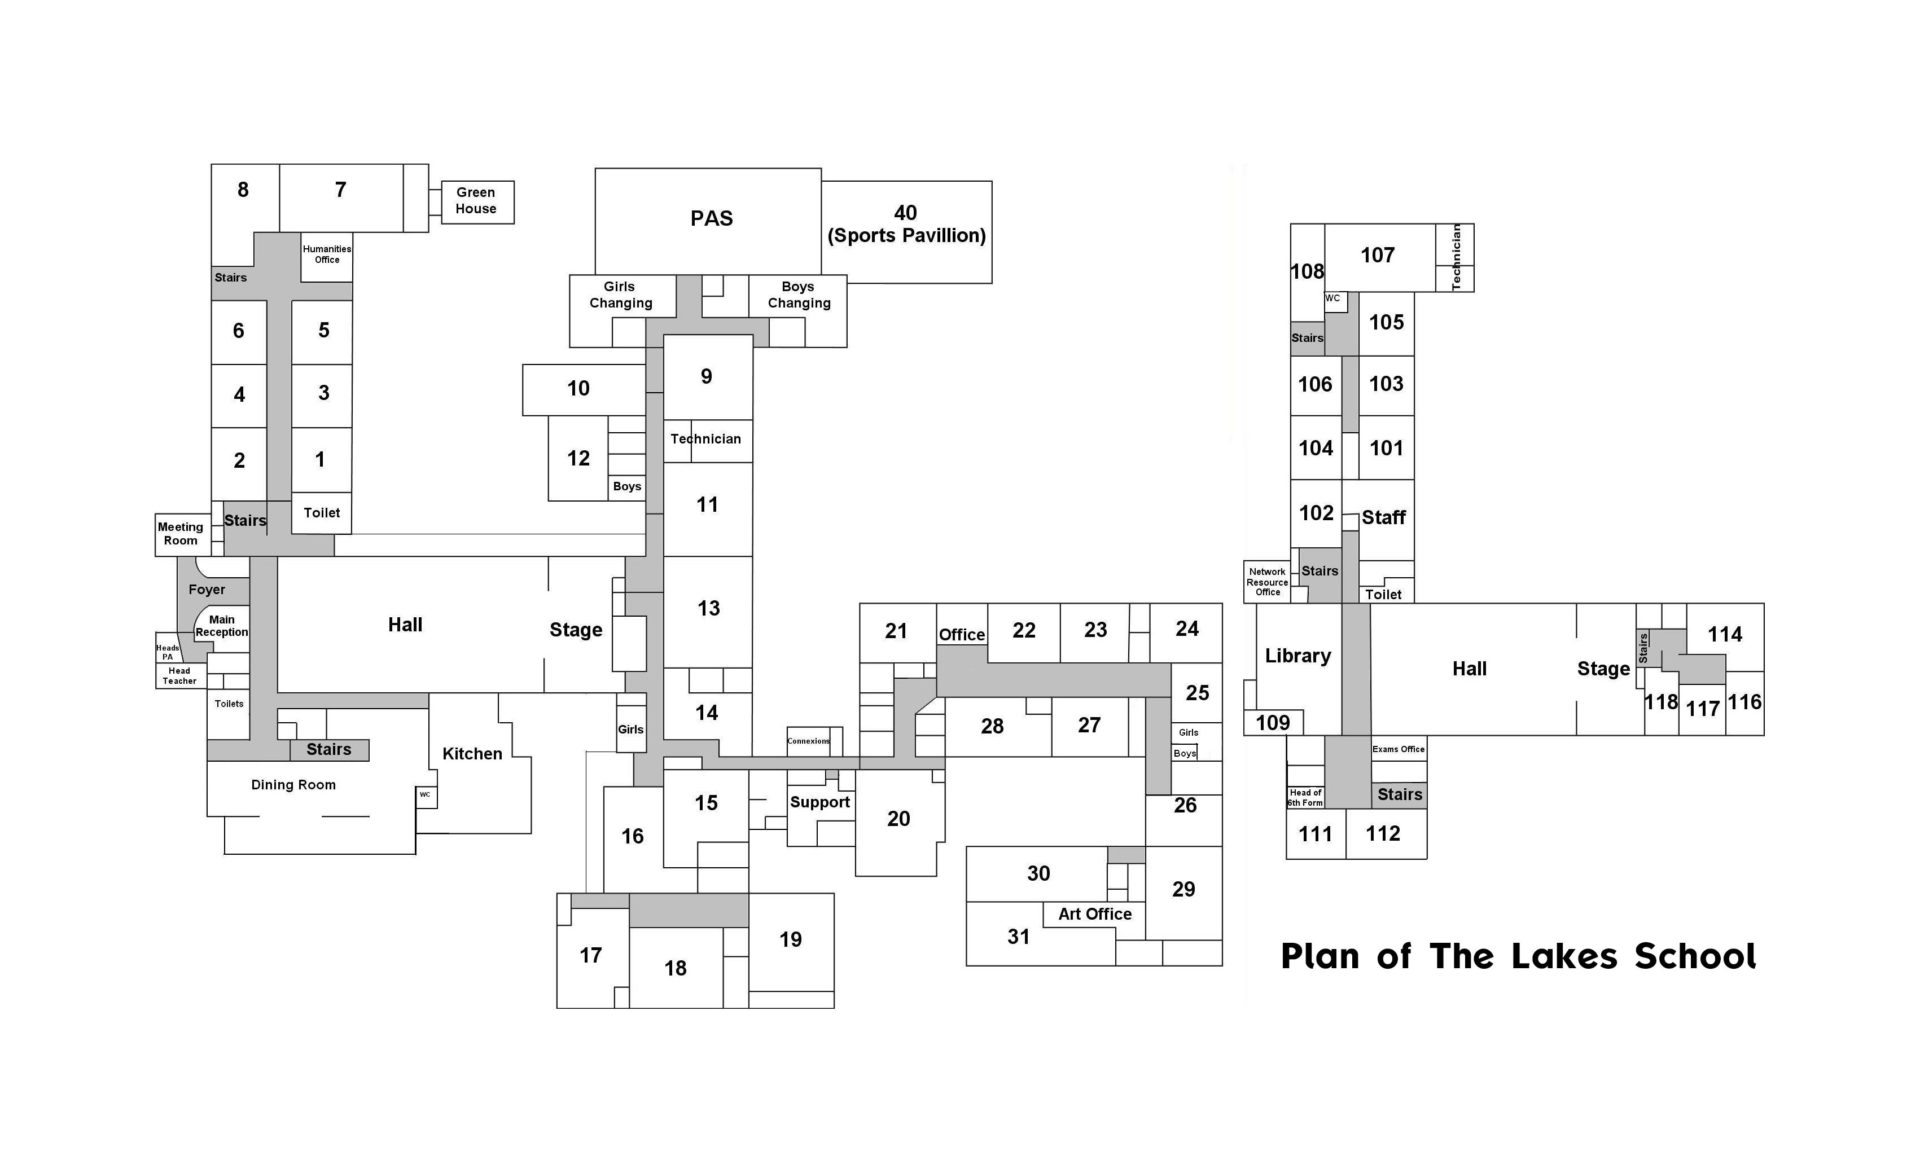 Plan of The Lakes School